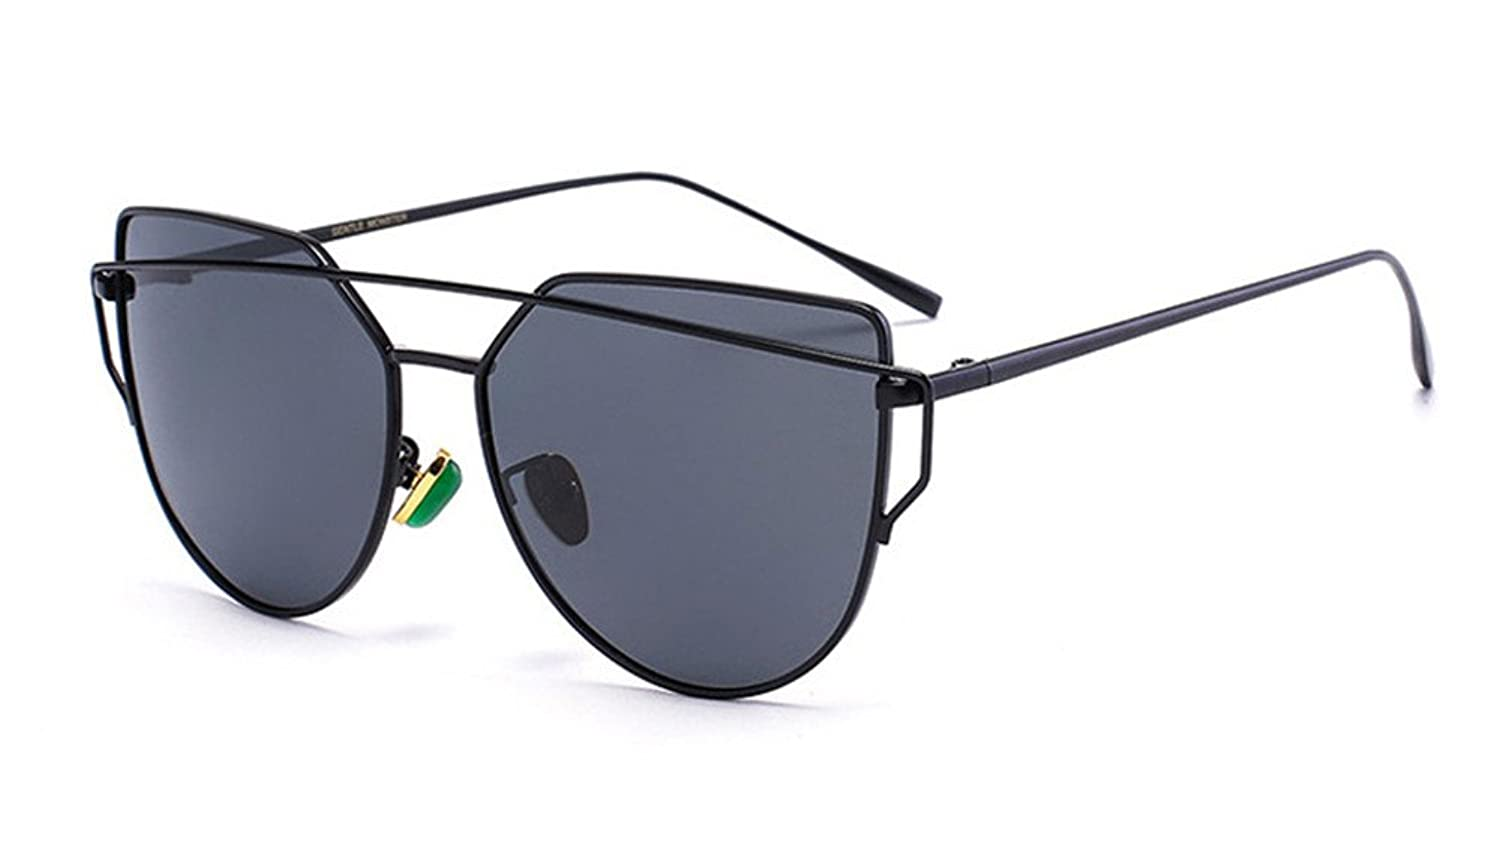 LY Women's Polarized classic sunglasses with metal frame green jewel nose bracket